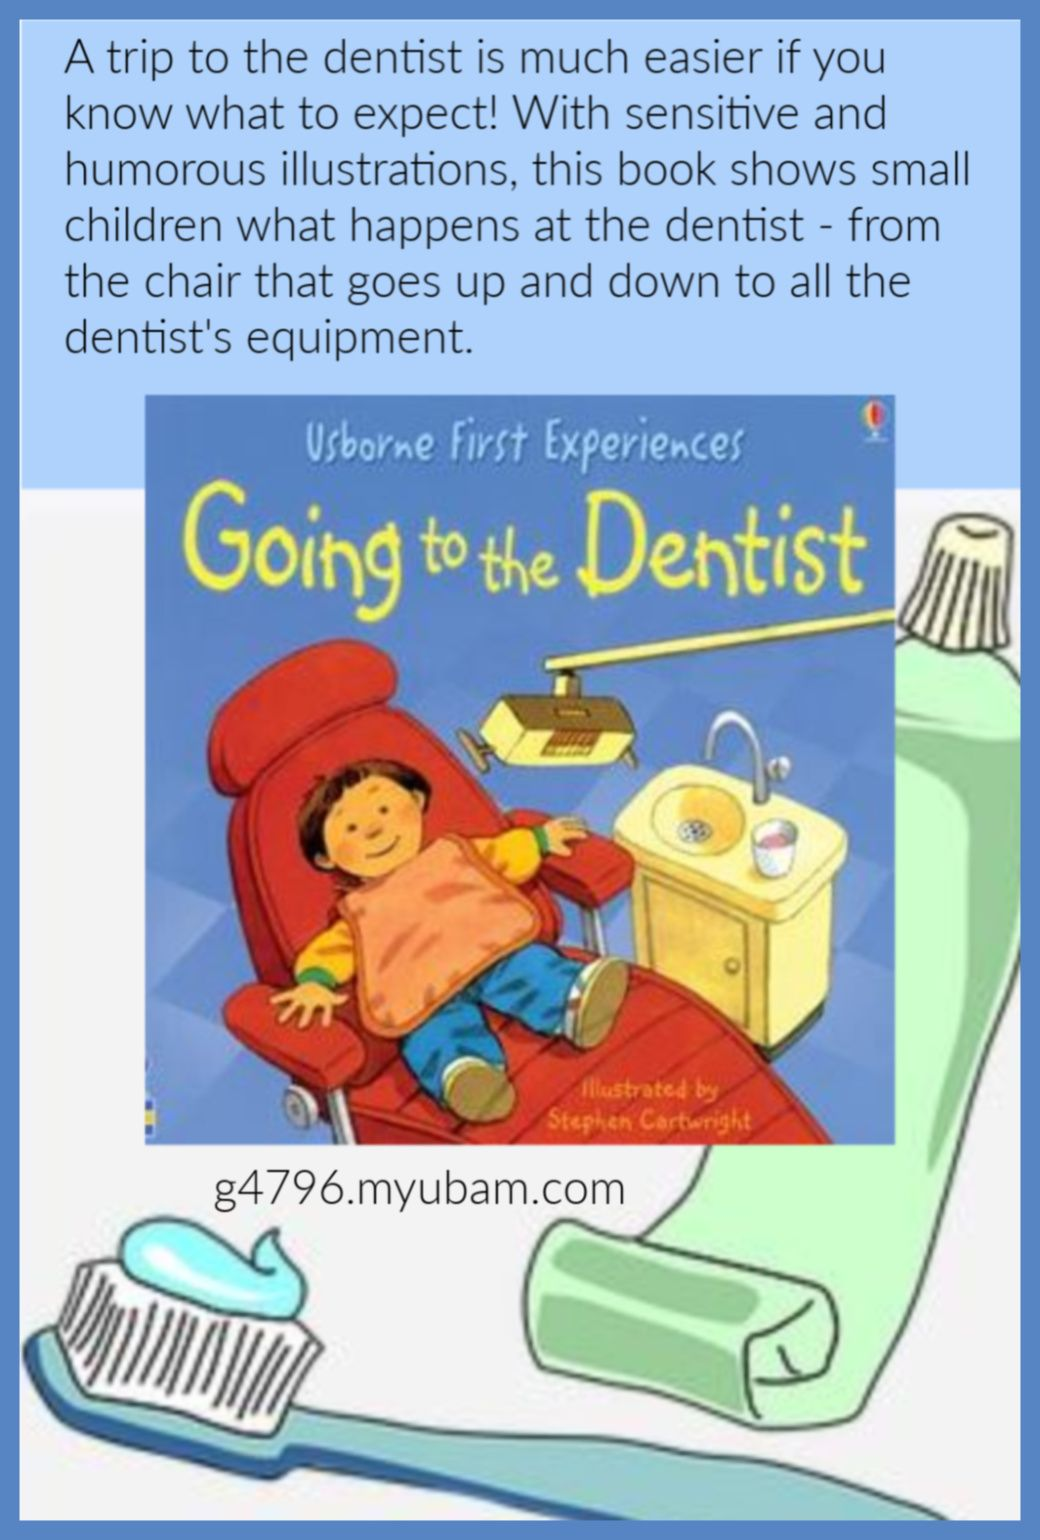 A trip to the dentist is much easier if you know what to